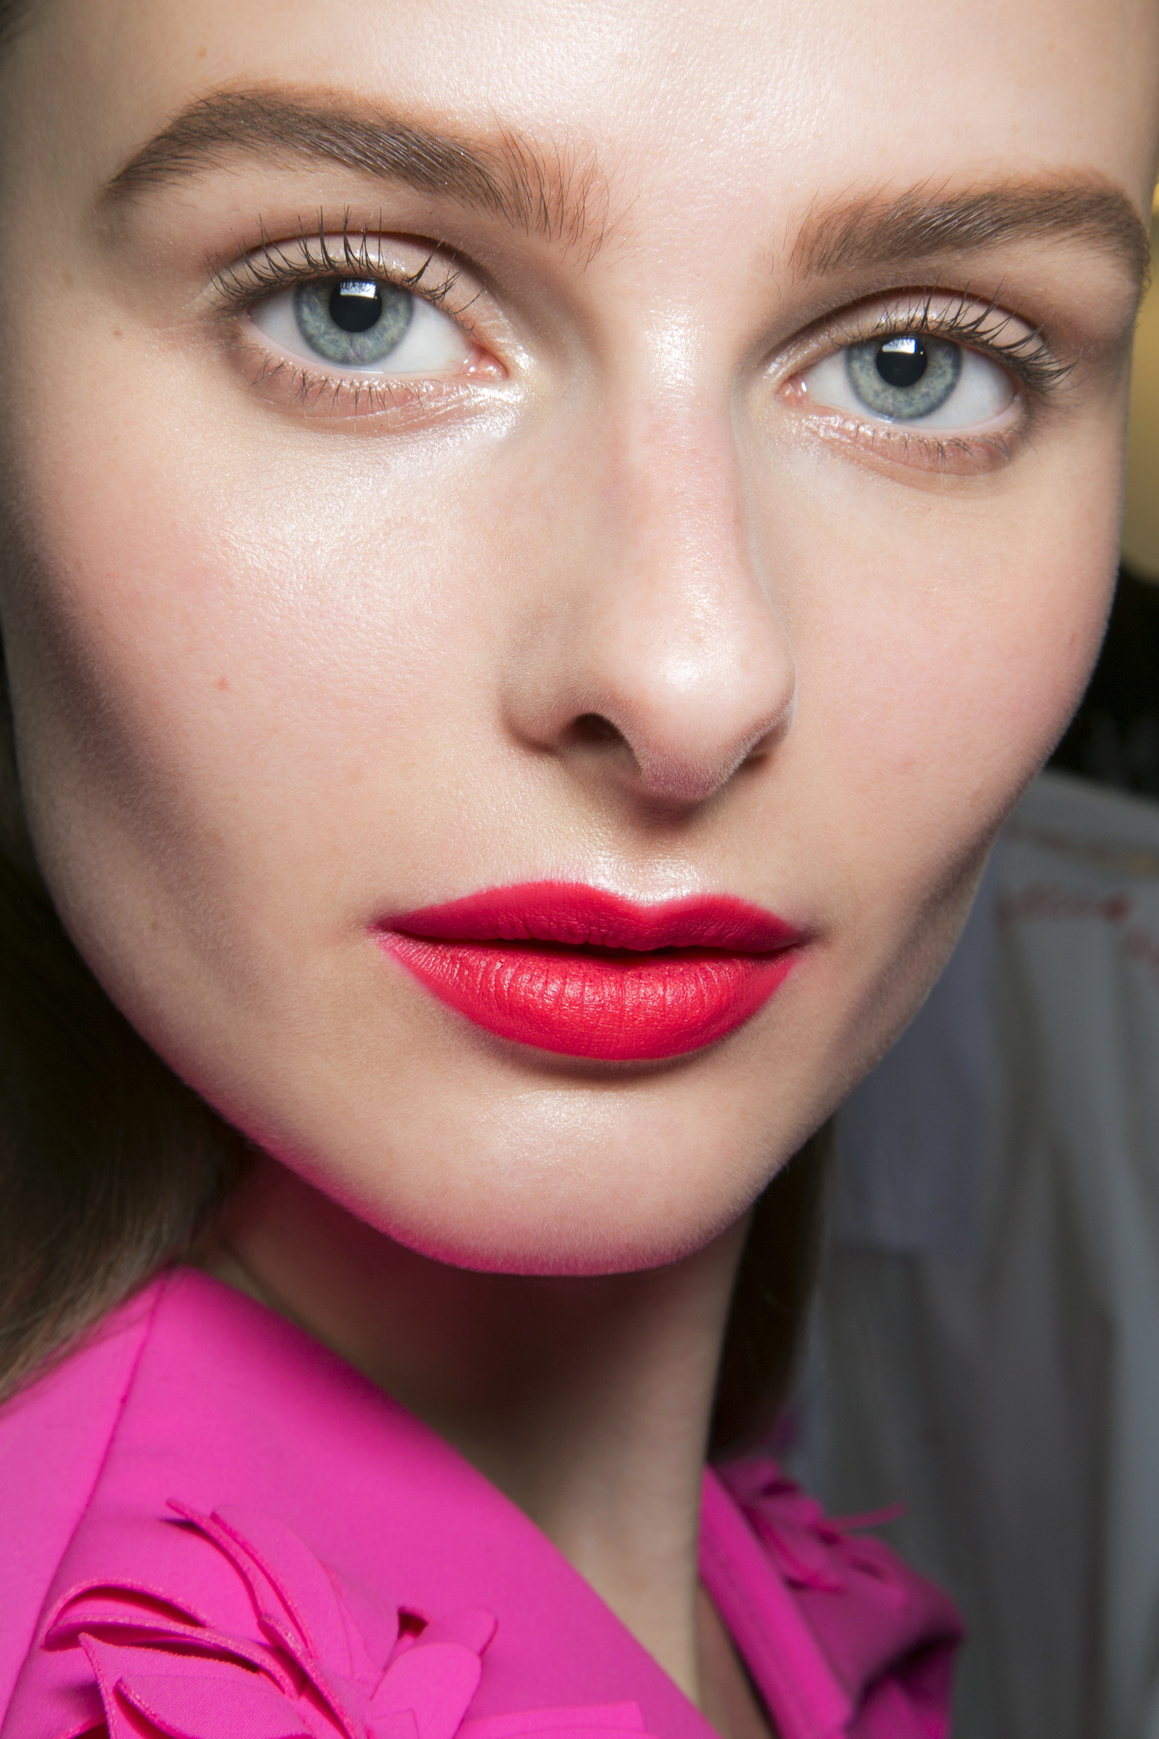 To acquire How to bright wear lipstick pictures trends